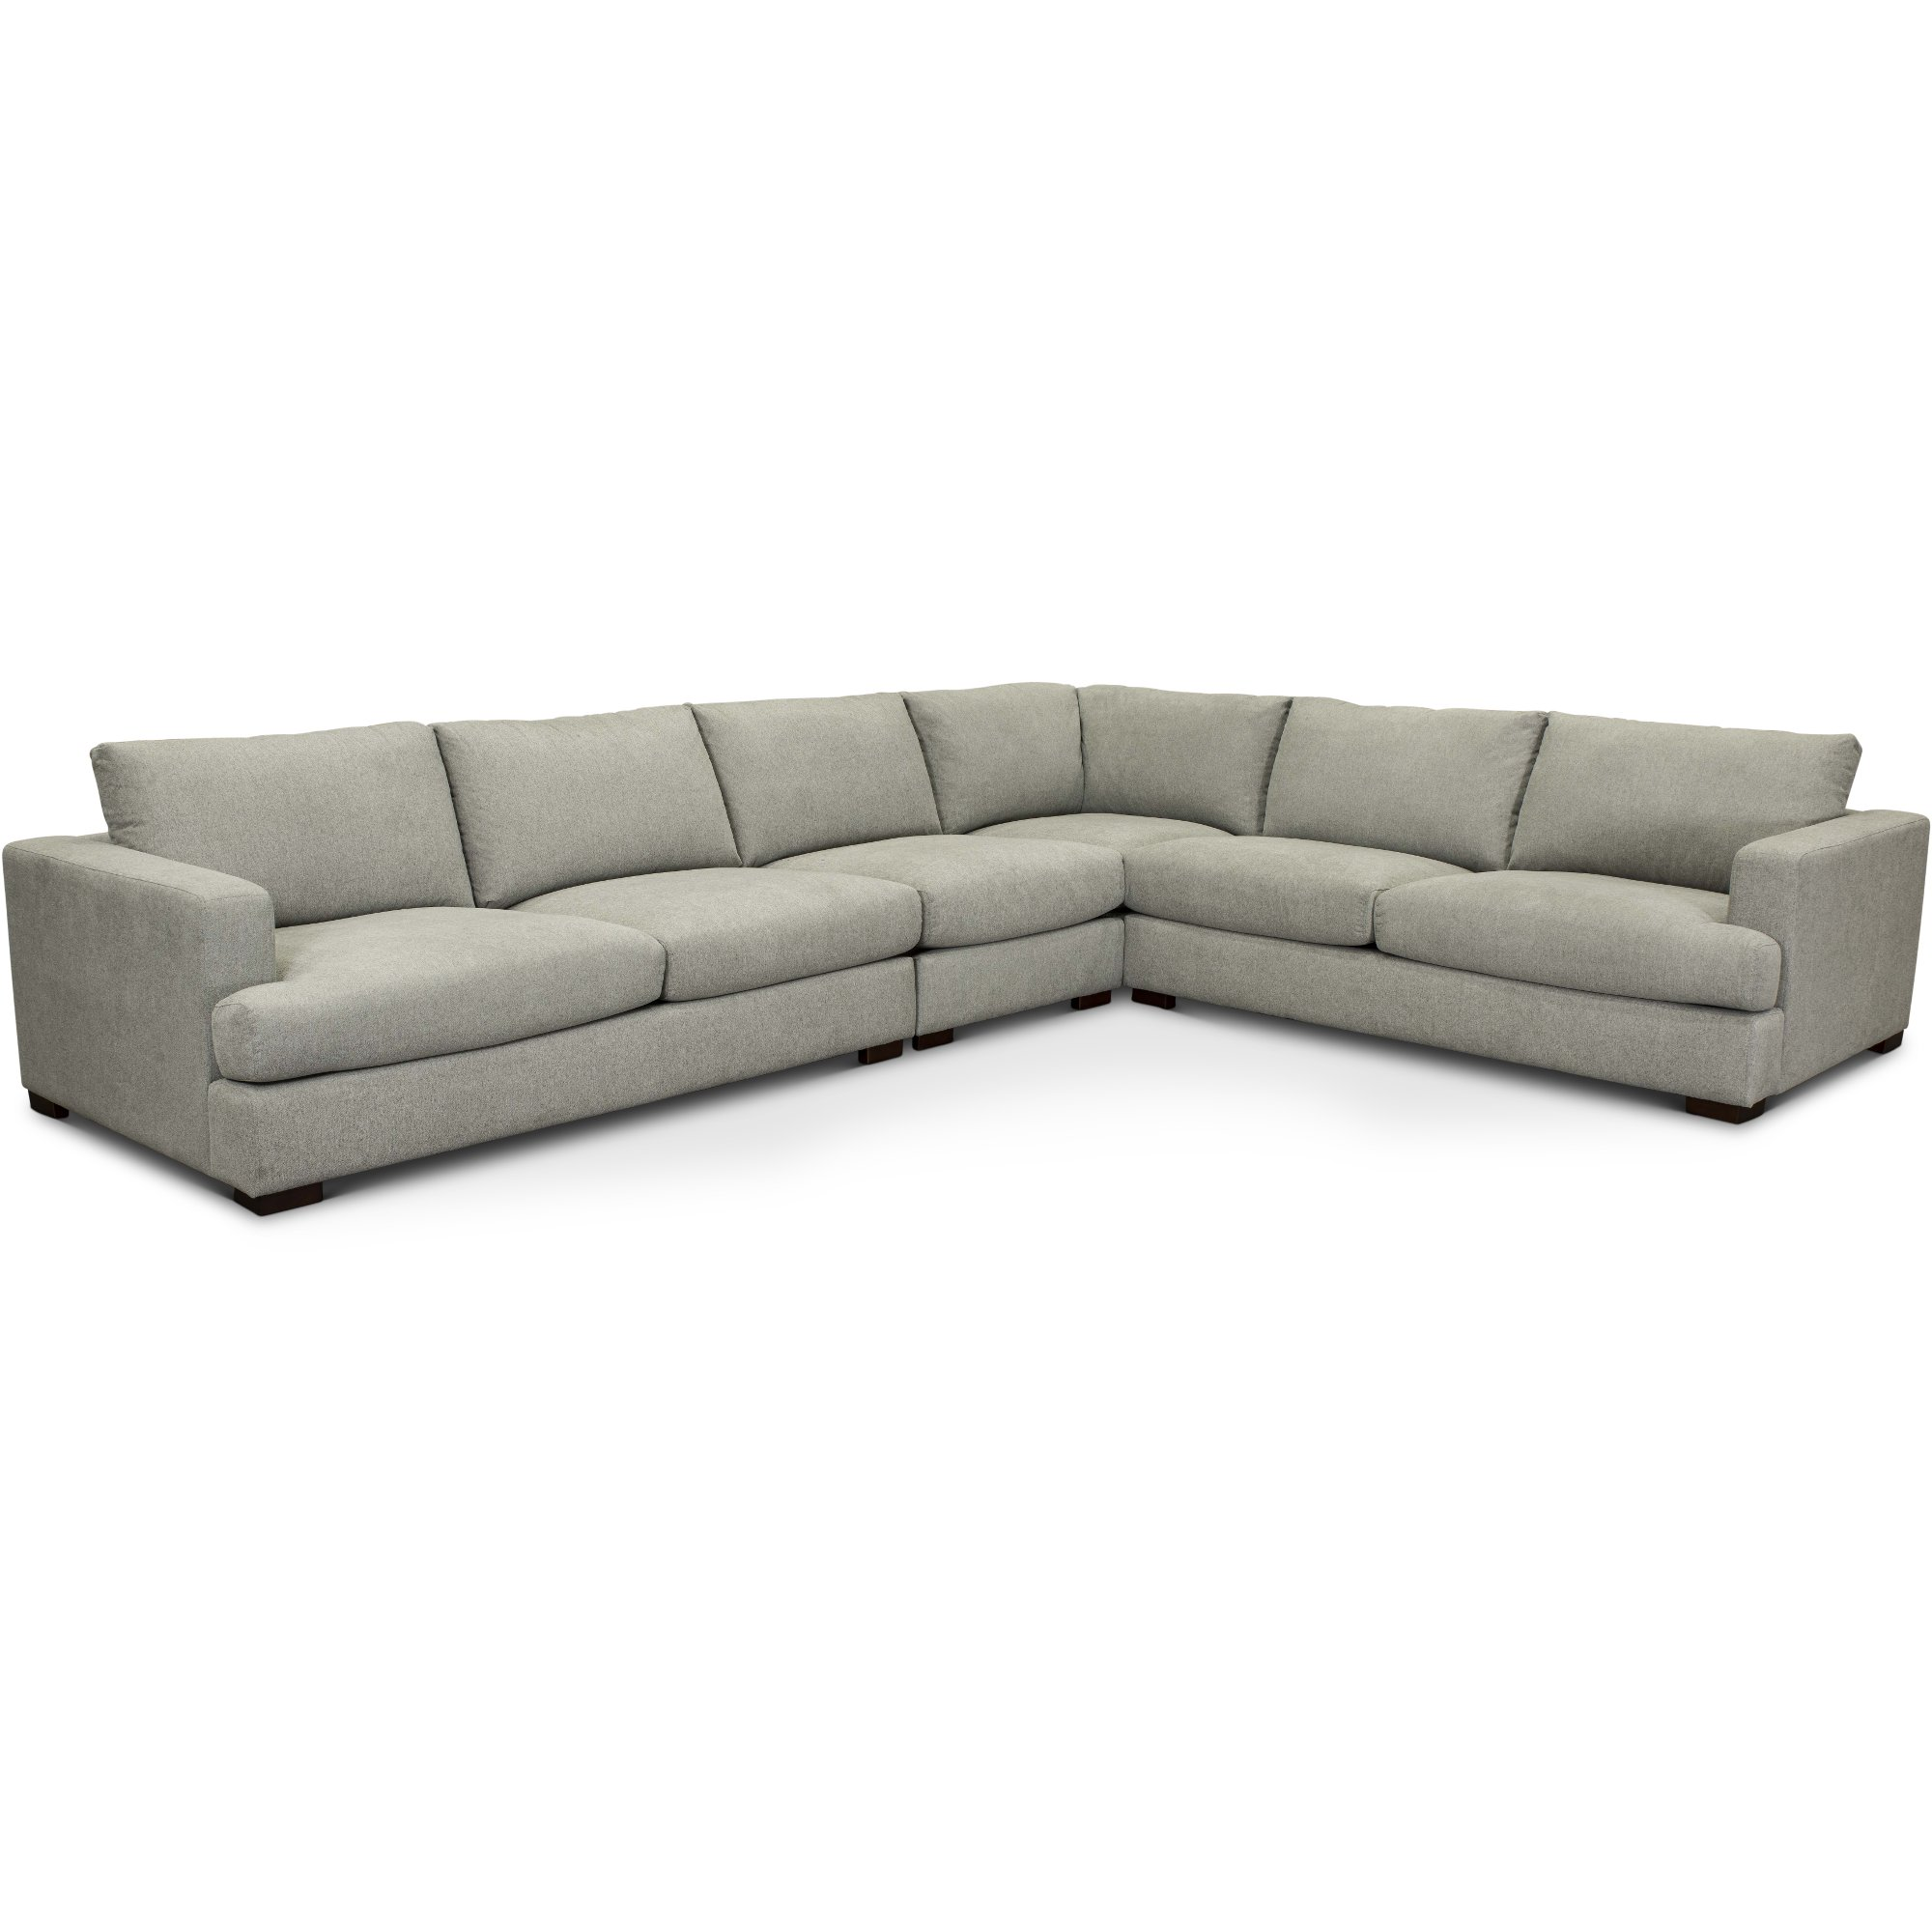 Contemporary Light Gray 4 Piece Sectional Sofa Colbie Rc Willey Furniture Store